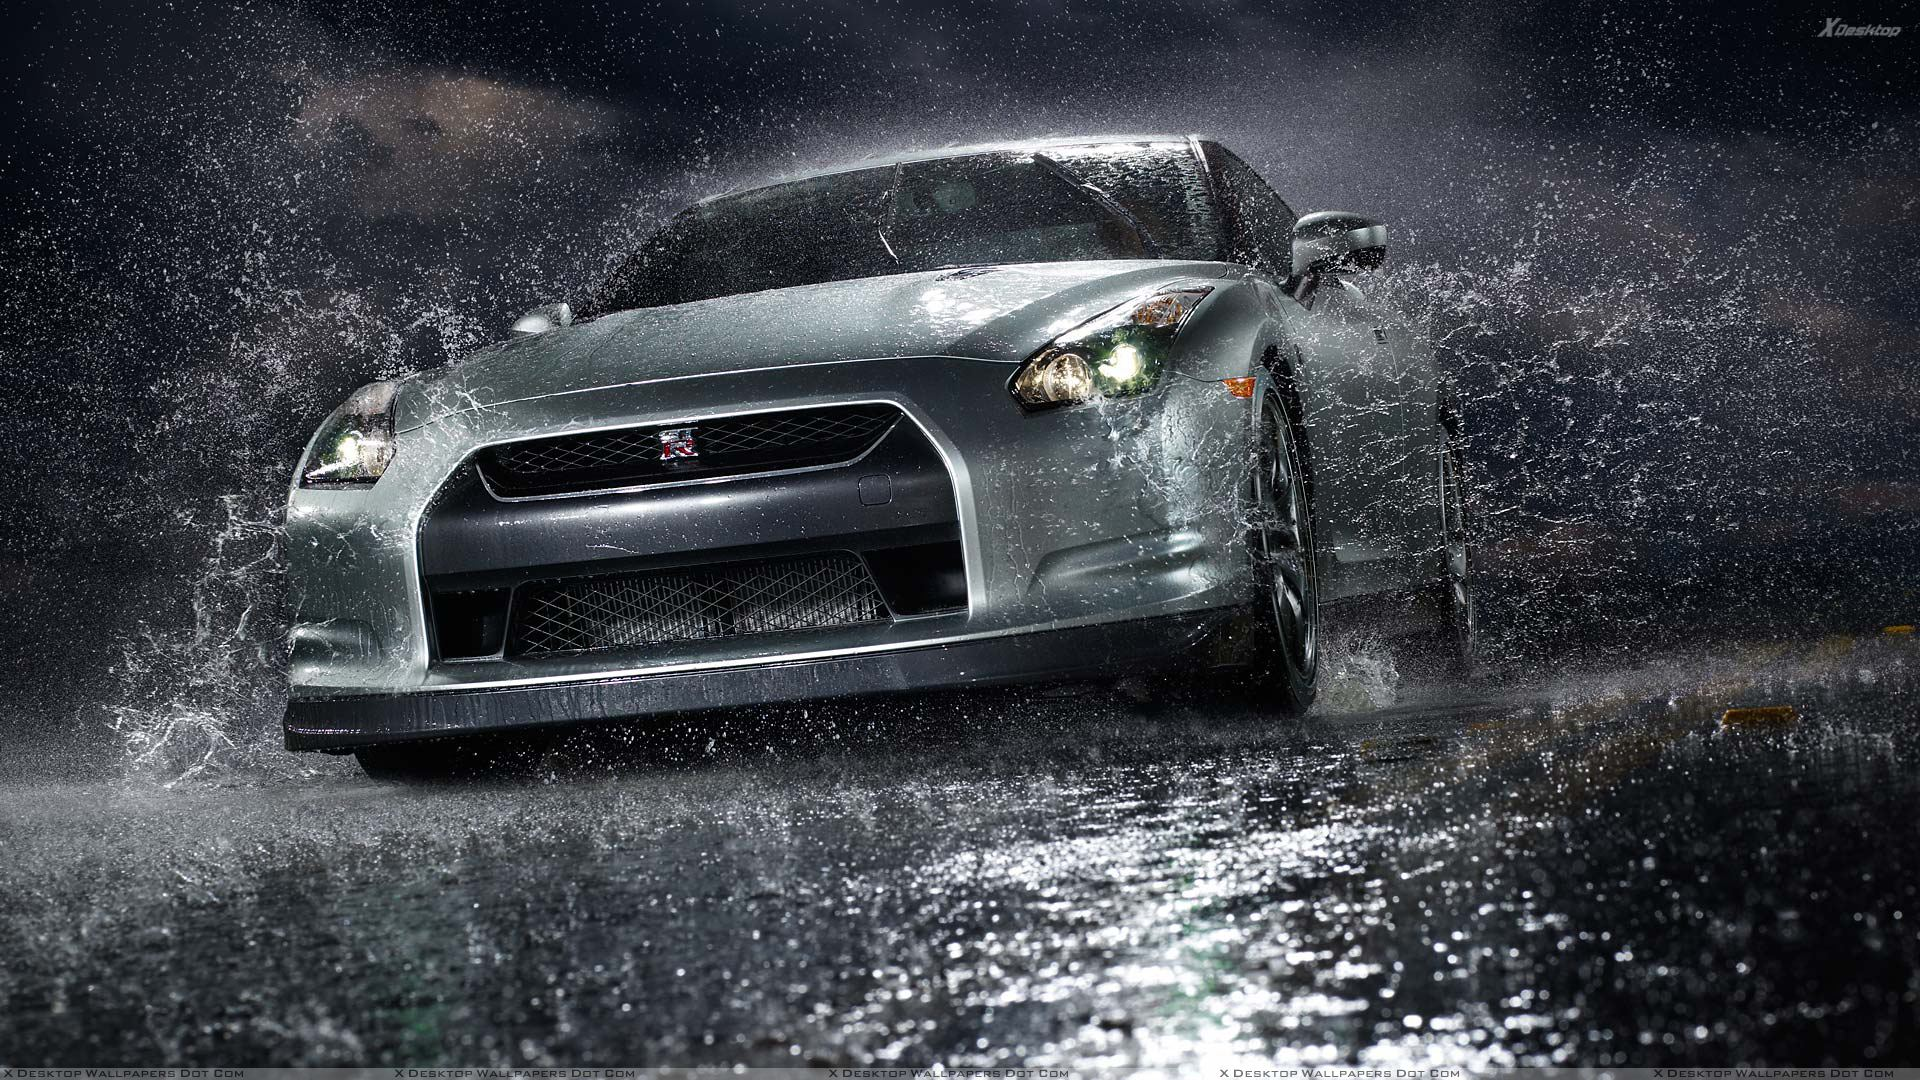 Nissan Gtr Front Pose After Rain In Black Night Wallpaper